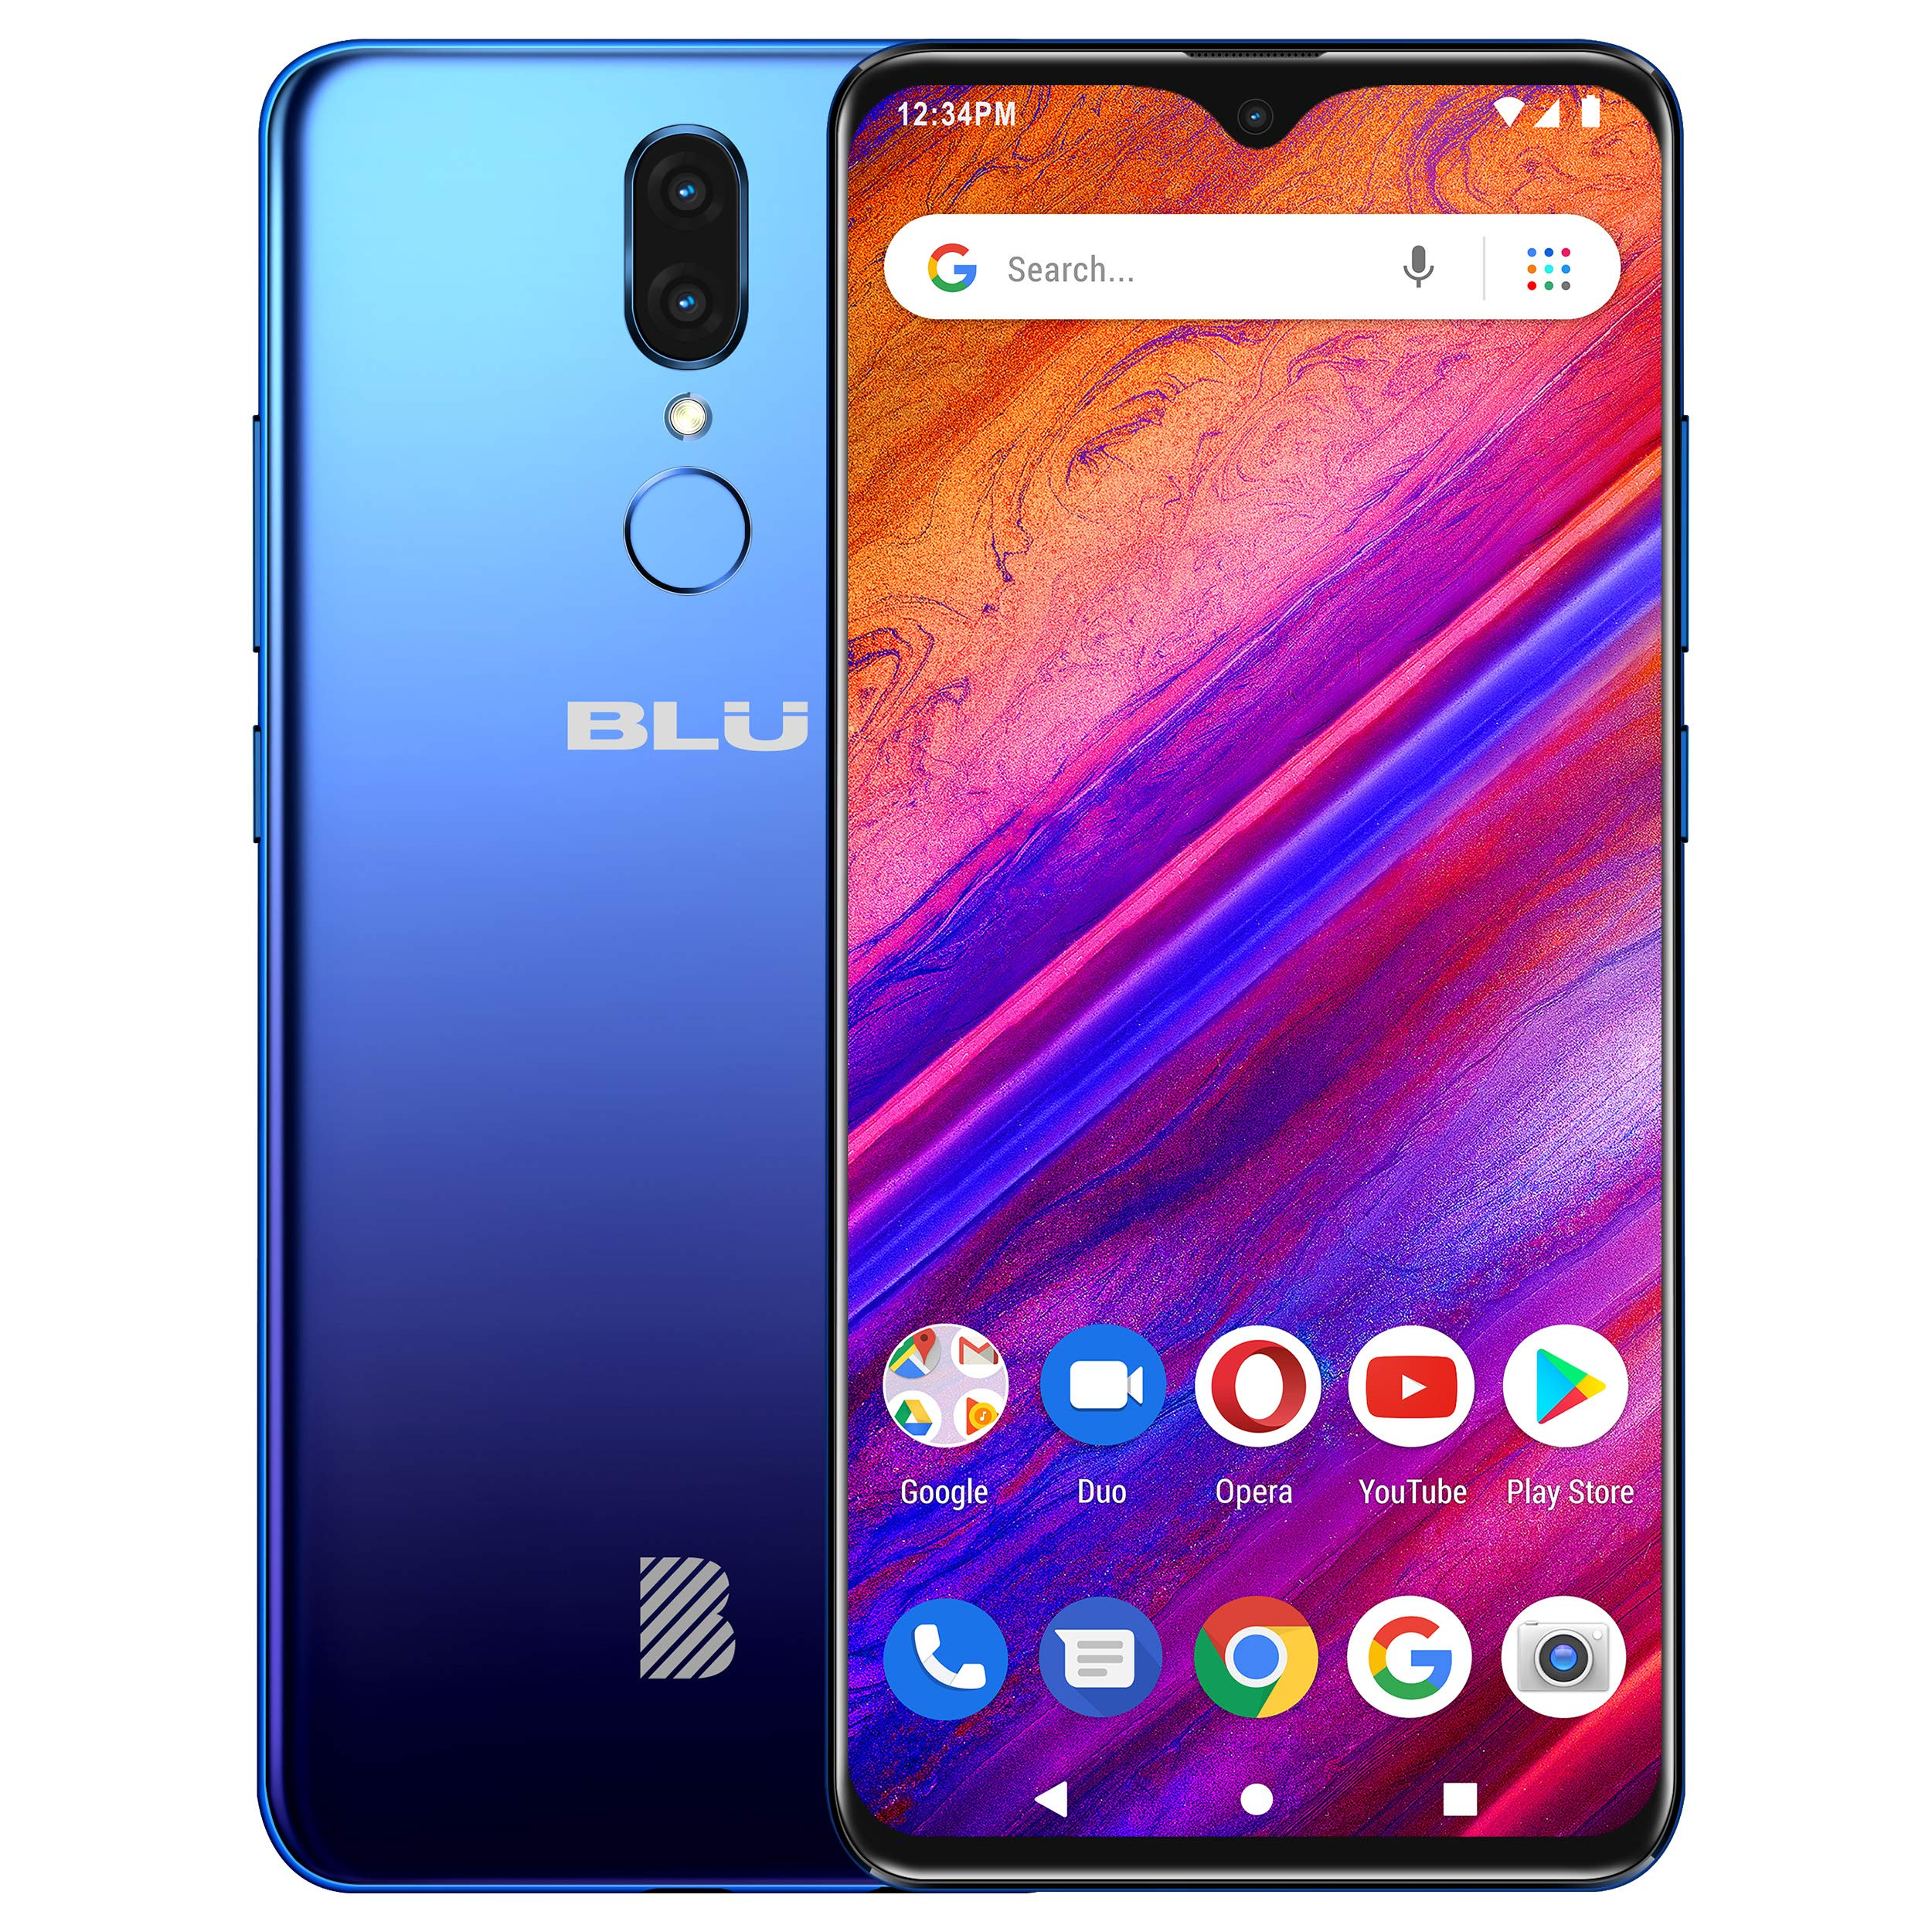 BLU G9 - 6.3'' HD Infinity Display Smartphone, 64GB+4GB RAM -Blue by BLU